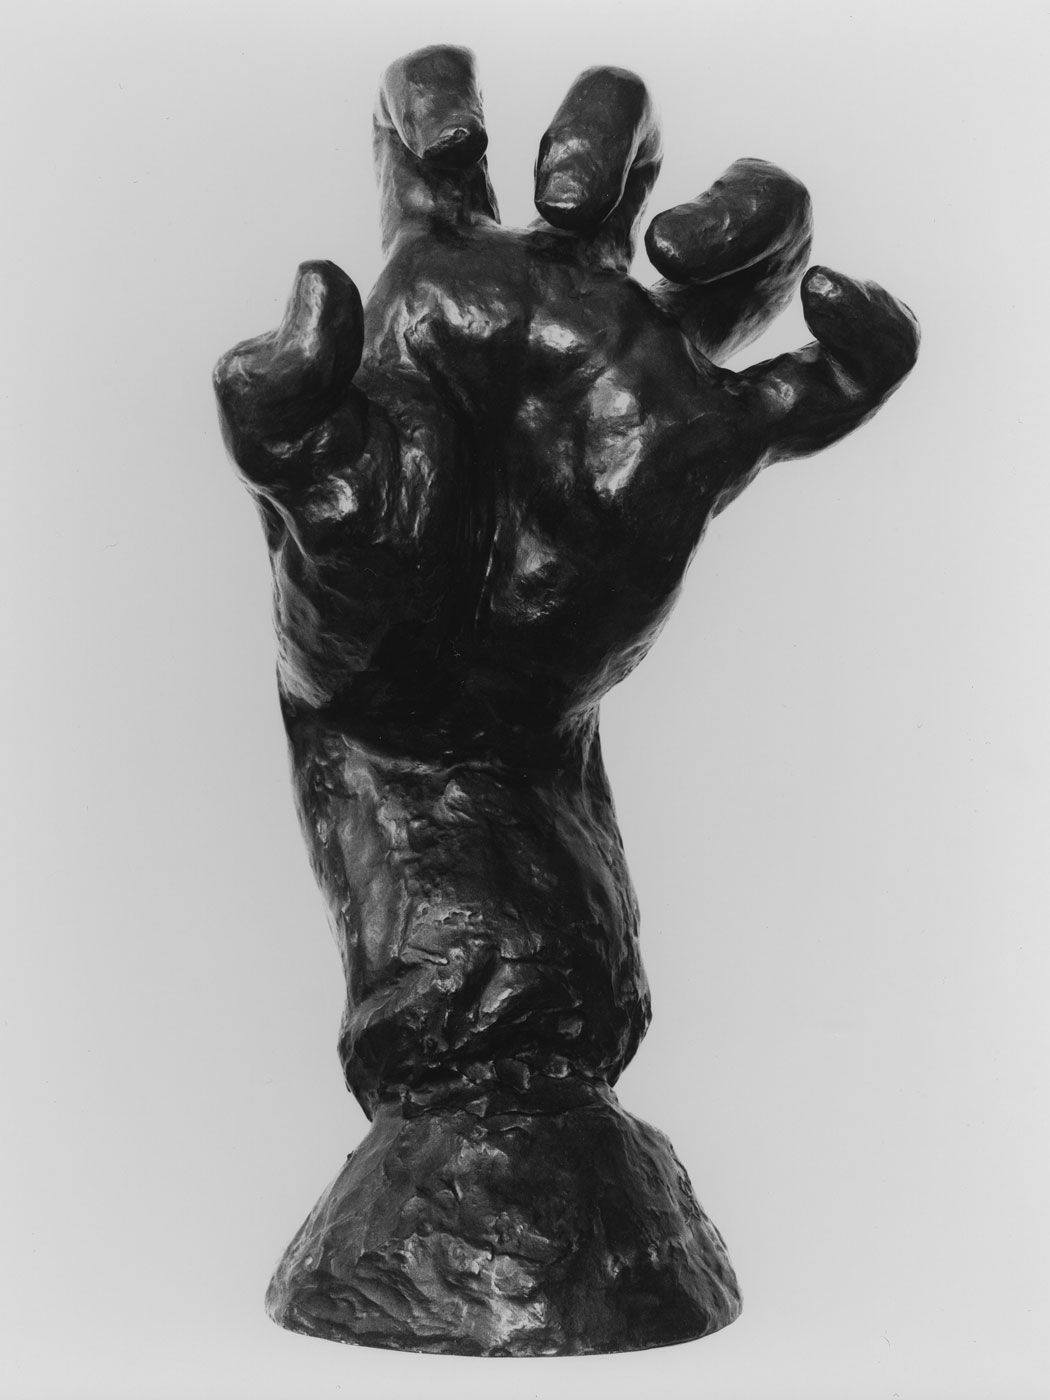 Real Medical Conditions Behind the Deformed Hands in Rodin's Sculptures The Real Medical Conditions Behind the Deformed Hands in Rodin's Sculptures   Science   WIREDWired  Wired may refer to: